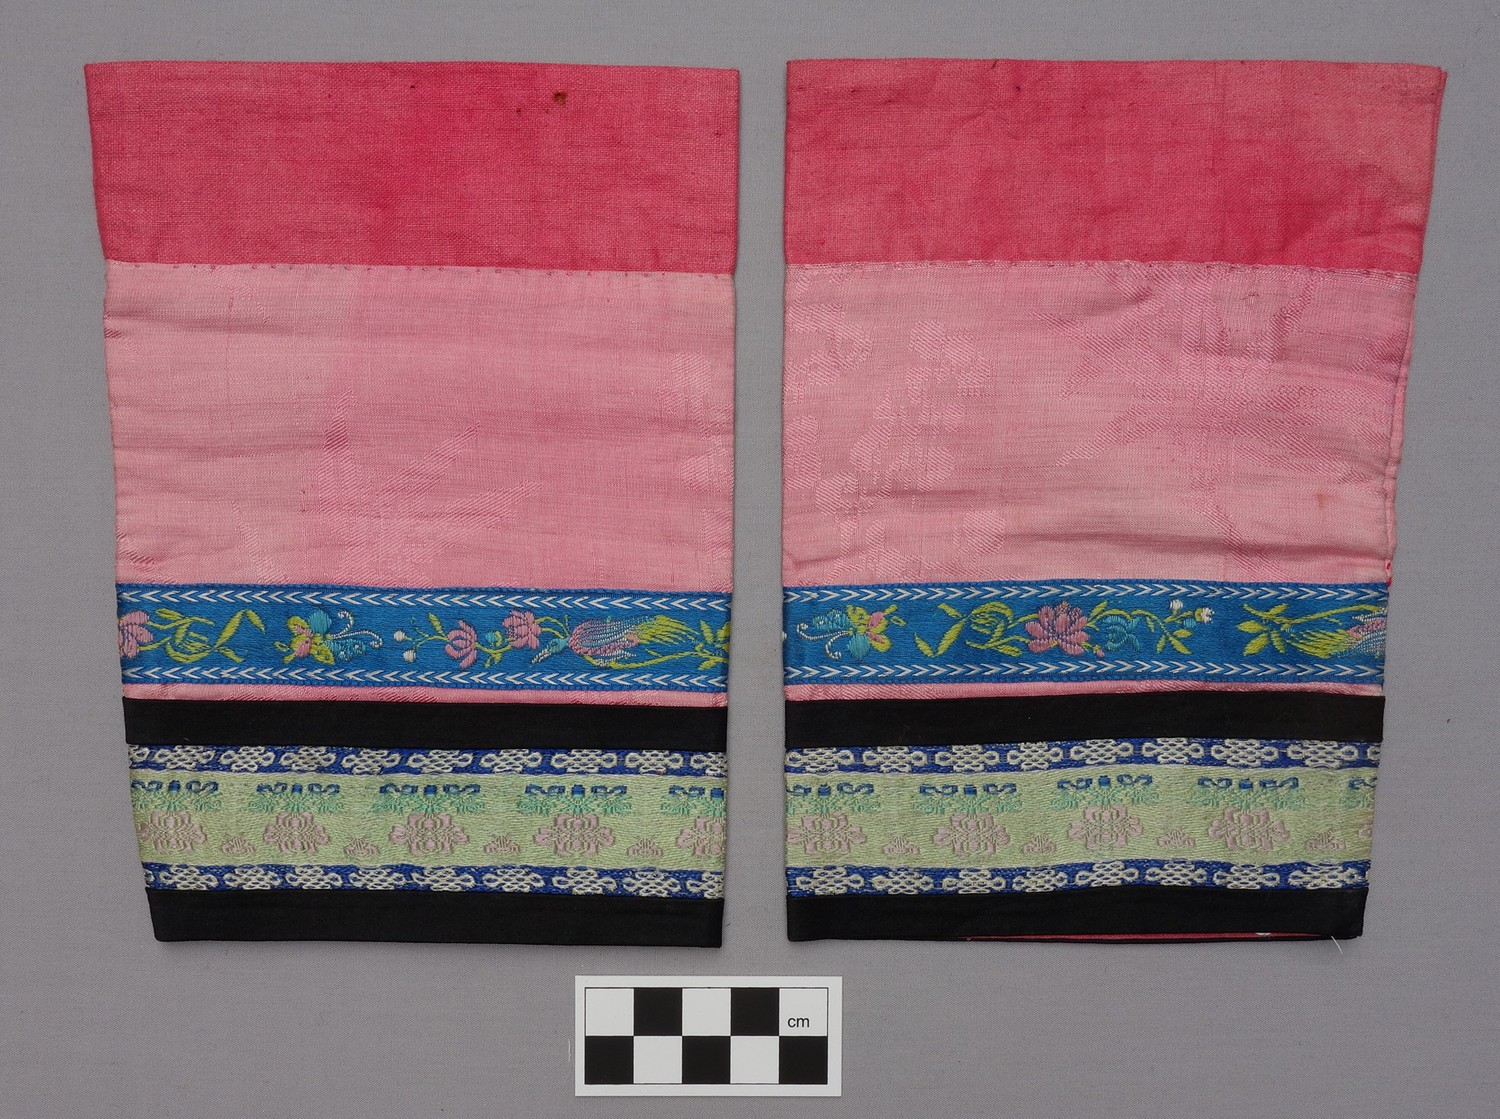 Pair of leggings worn with a pair of lotus shoes (late 19th century; TRC 2013.0063c-d).